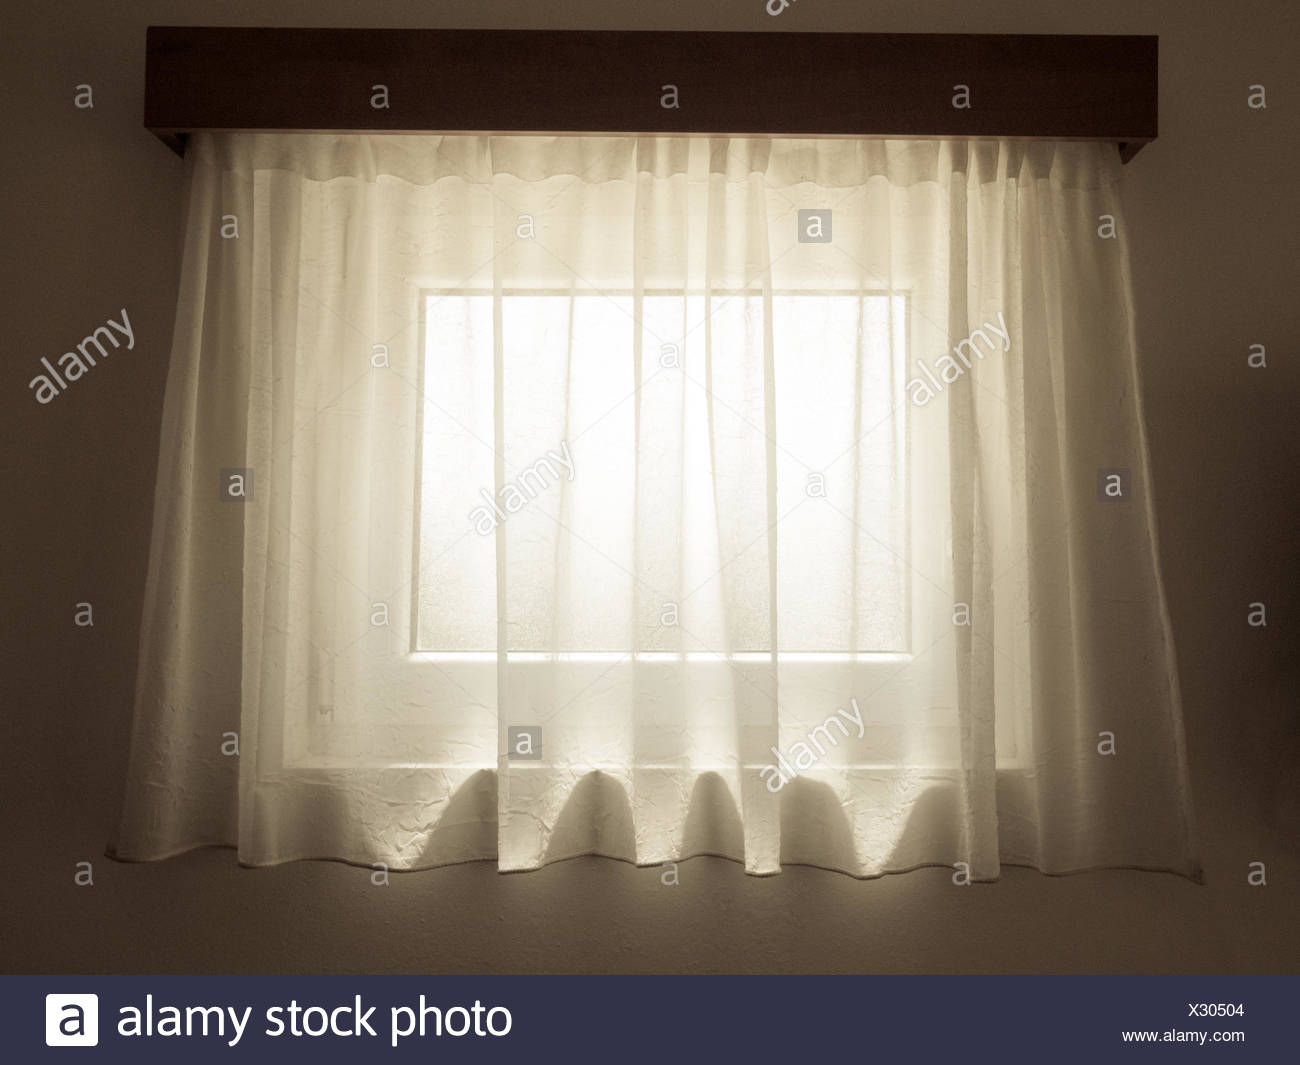 interior curtain - Stock Image